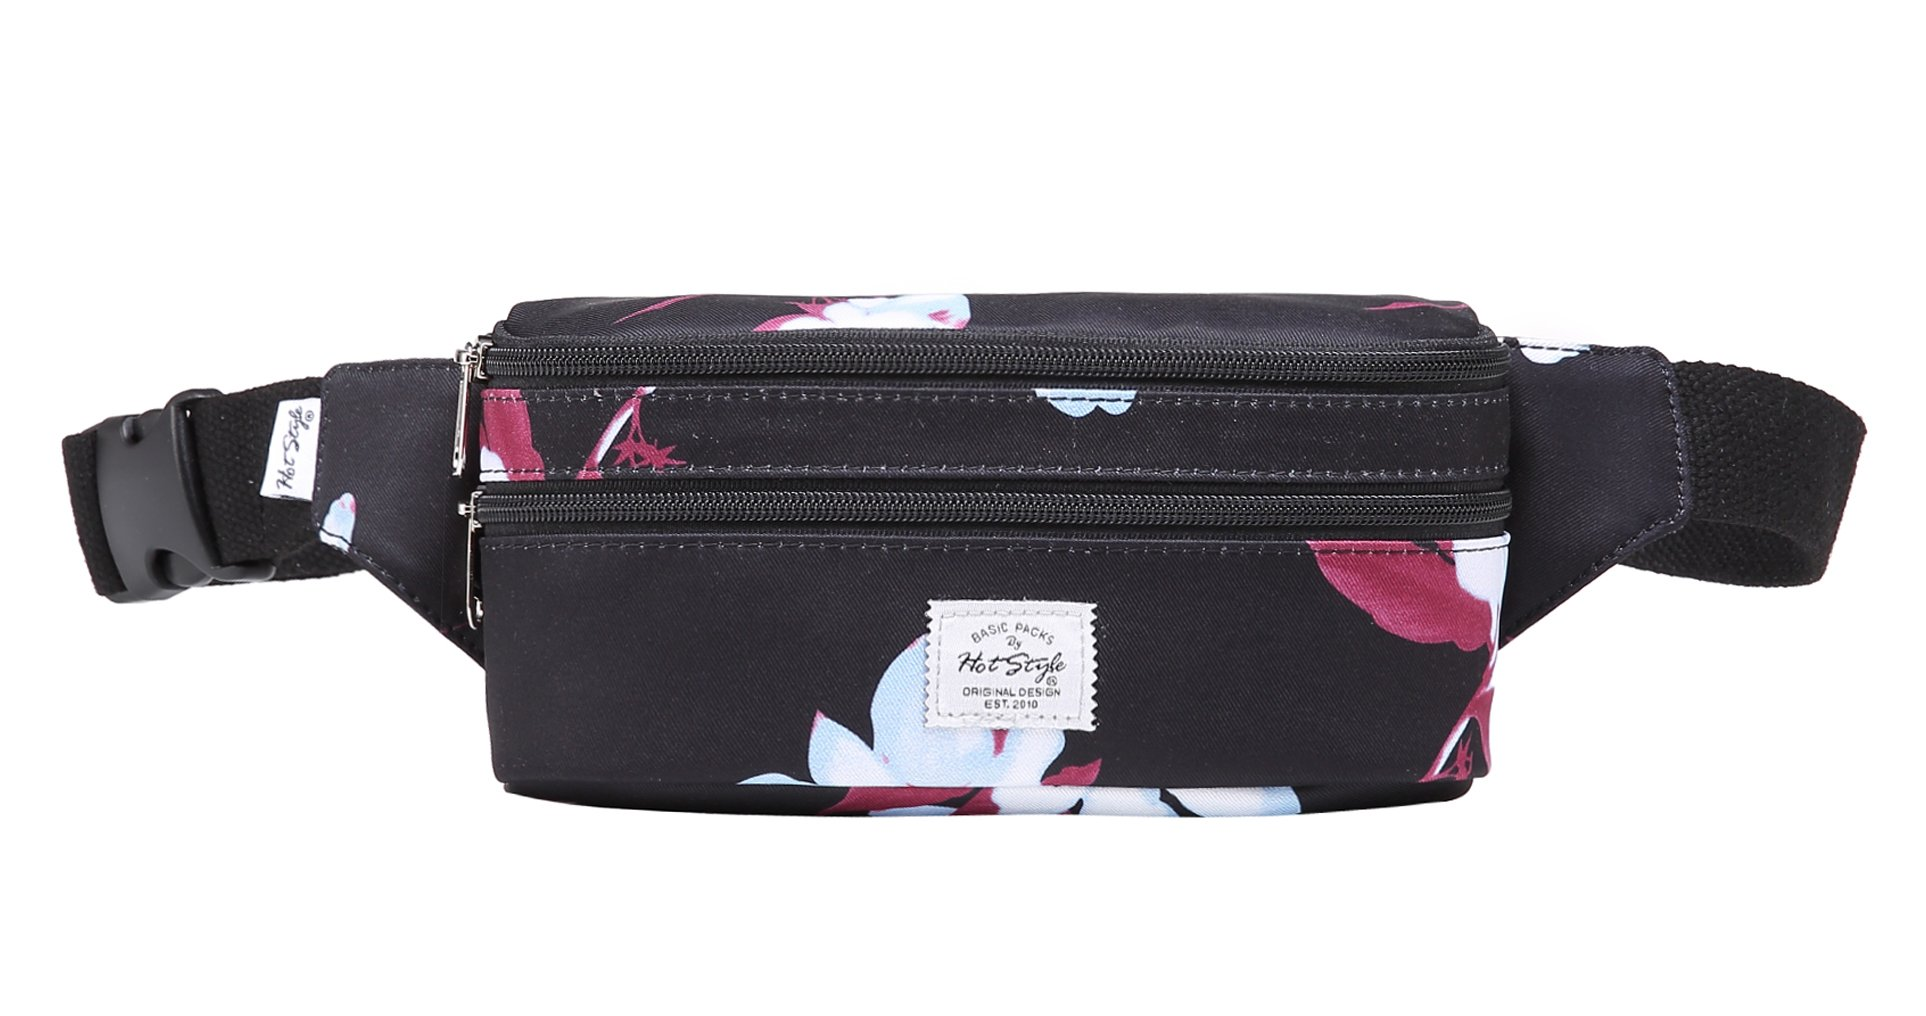 521s Fashion Waist Bag Cute Fanny Pack | 8.0''x2.5''x4.3'' | Magnolia, Black by hotstyle